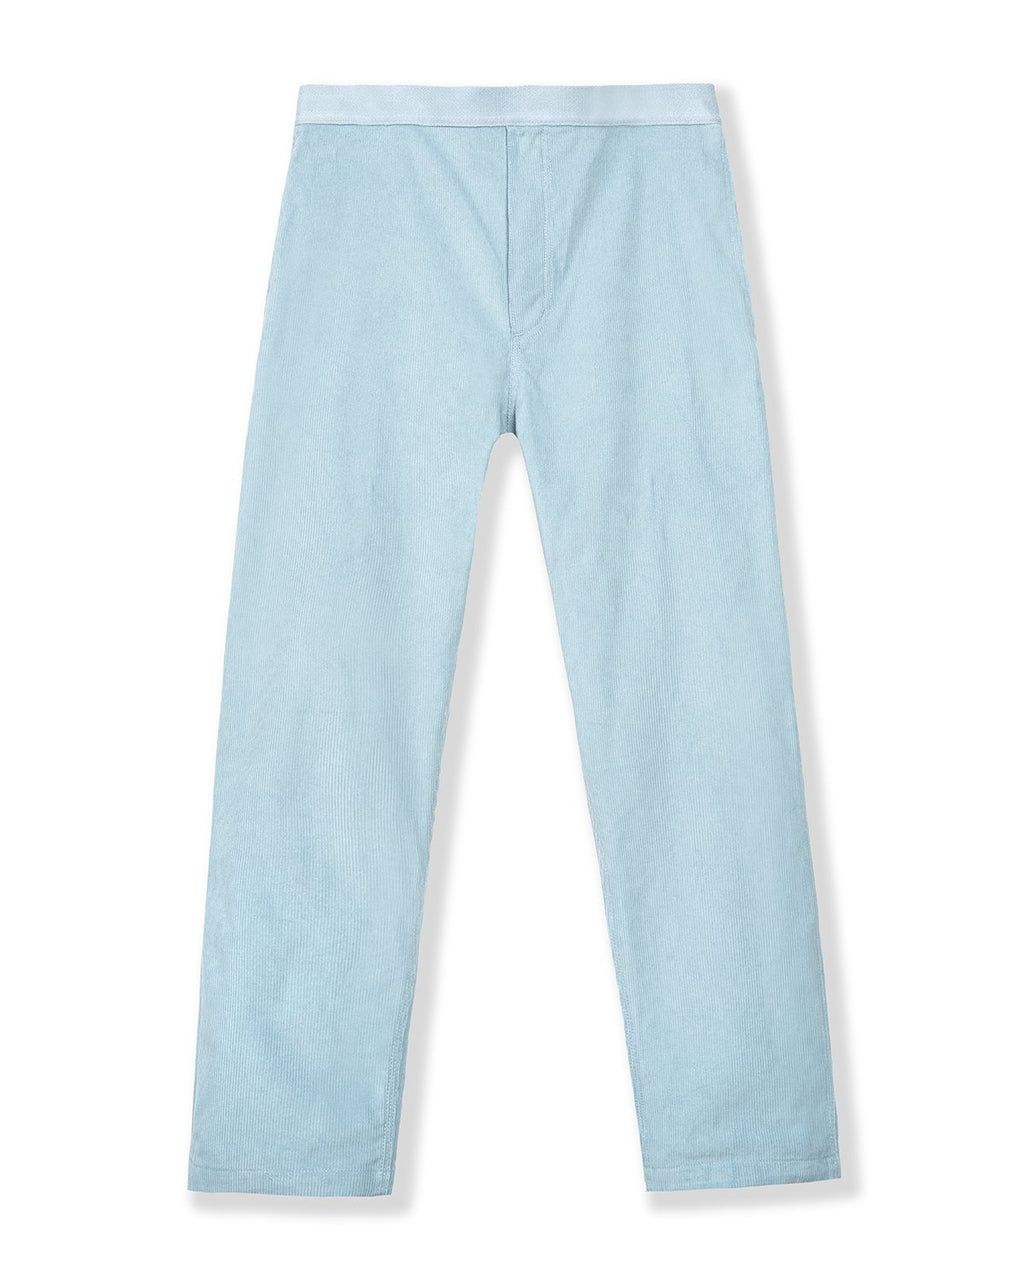 HAD/SOFTWARE VELCRO CORDUROY CARPENTER PANT - LIGHT BLUE